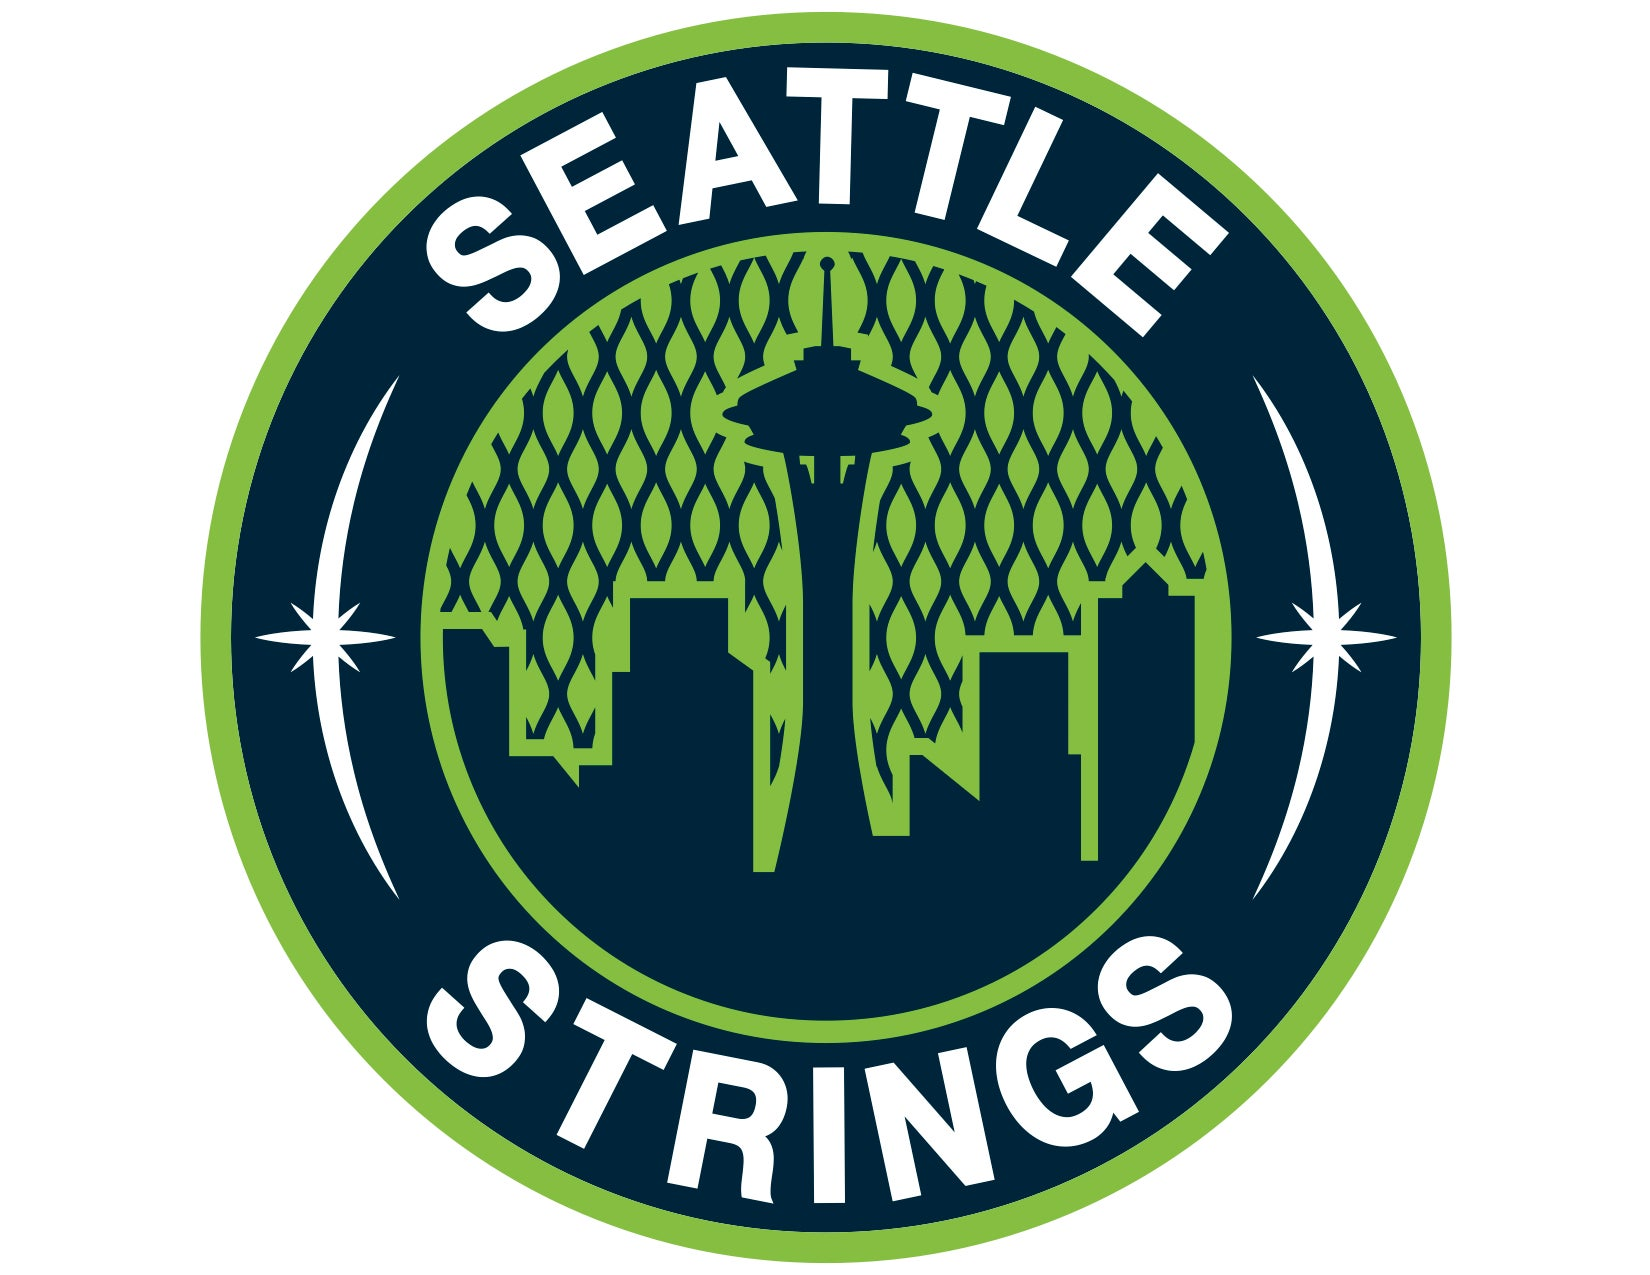 Seattle Strings